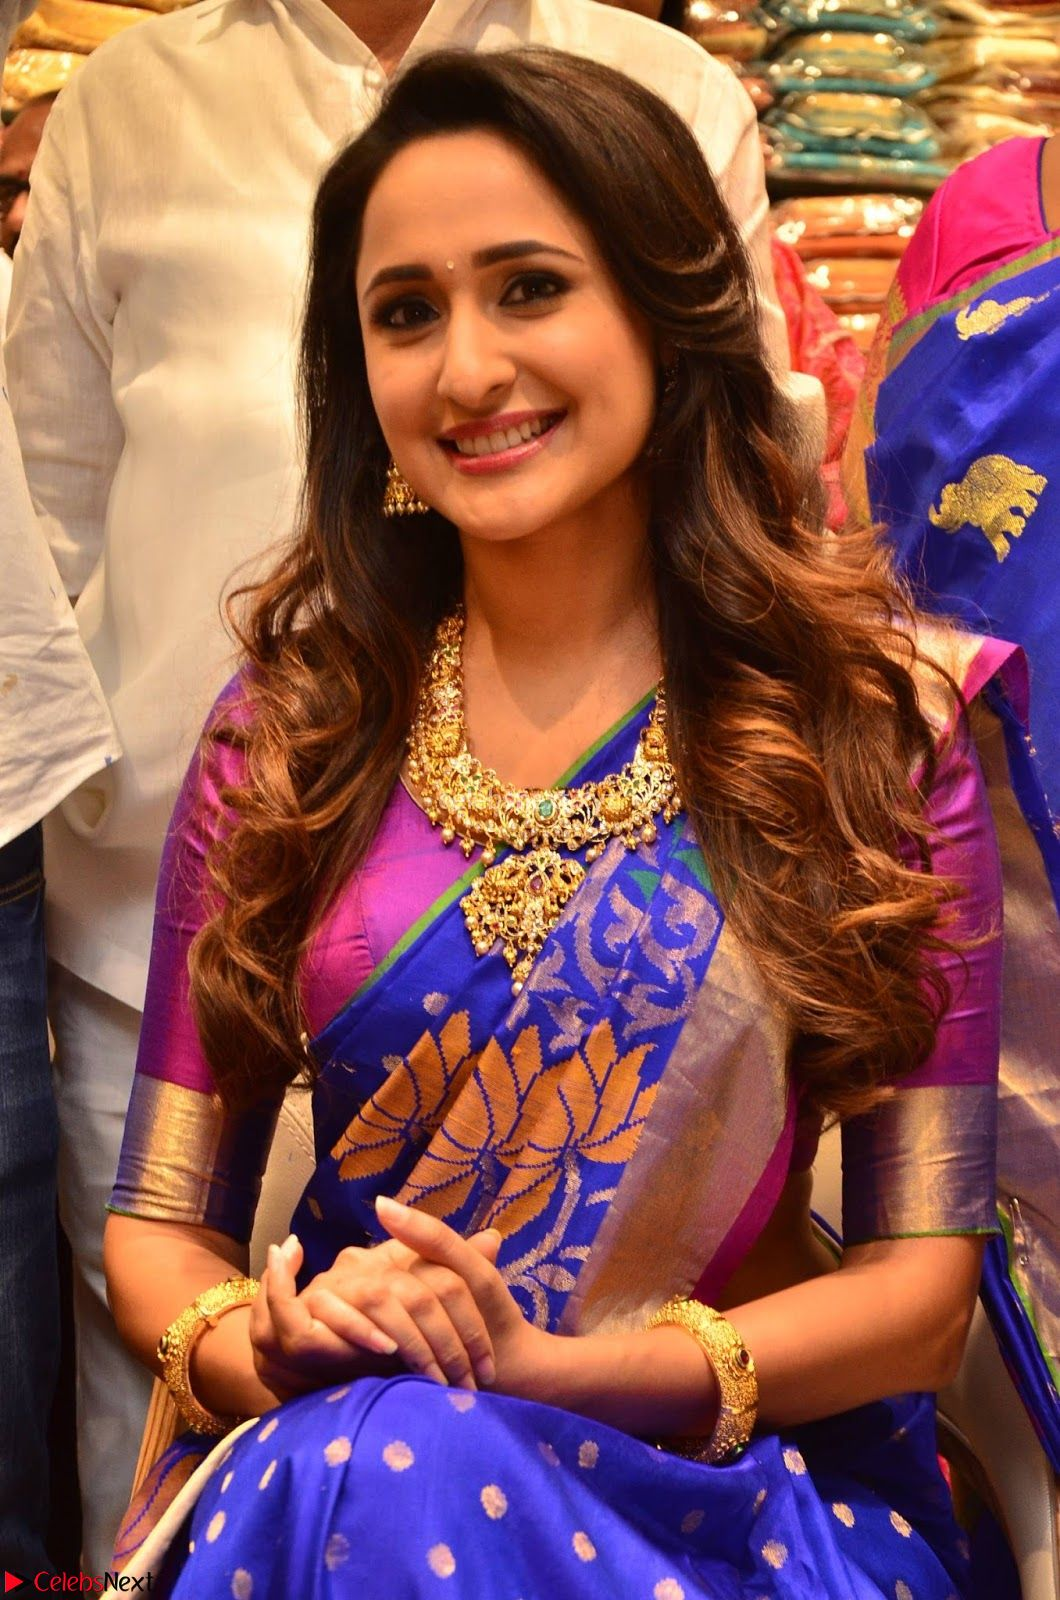 Pragya Jaiswal in colorful Saree looks stunning at inauguration of South India Shopping Mall at Madinaguda